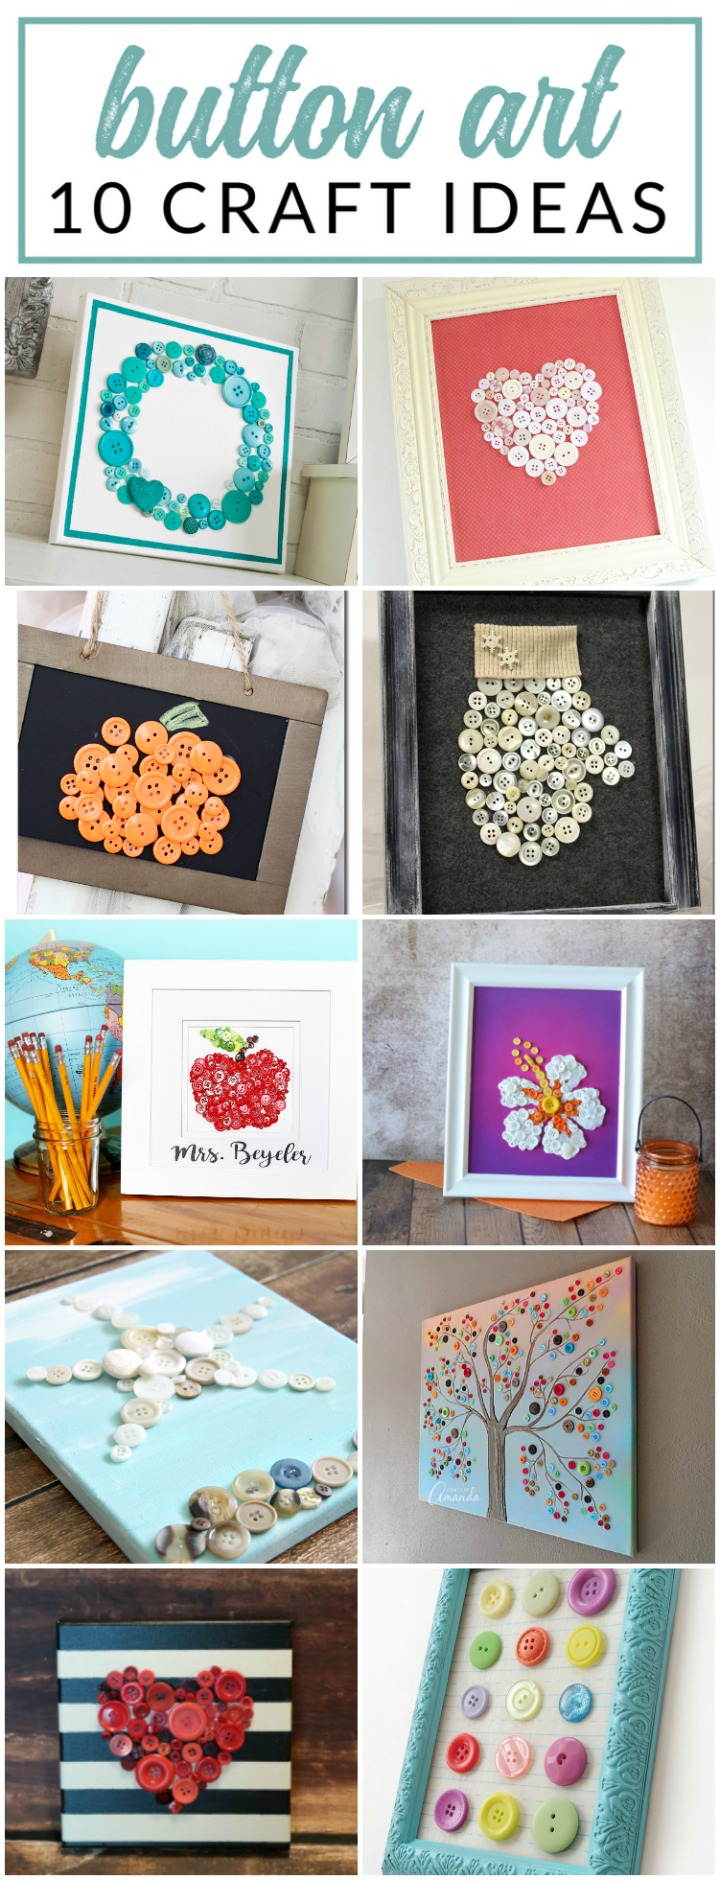 These button art ideas are ADORABLE! Give one of these button and canvas crafts a try - I've gathered 25 super cute projects for inspiration.